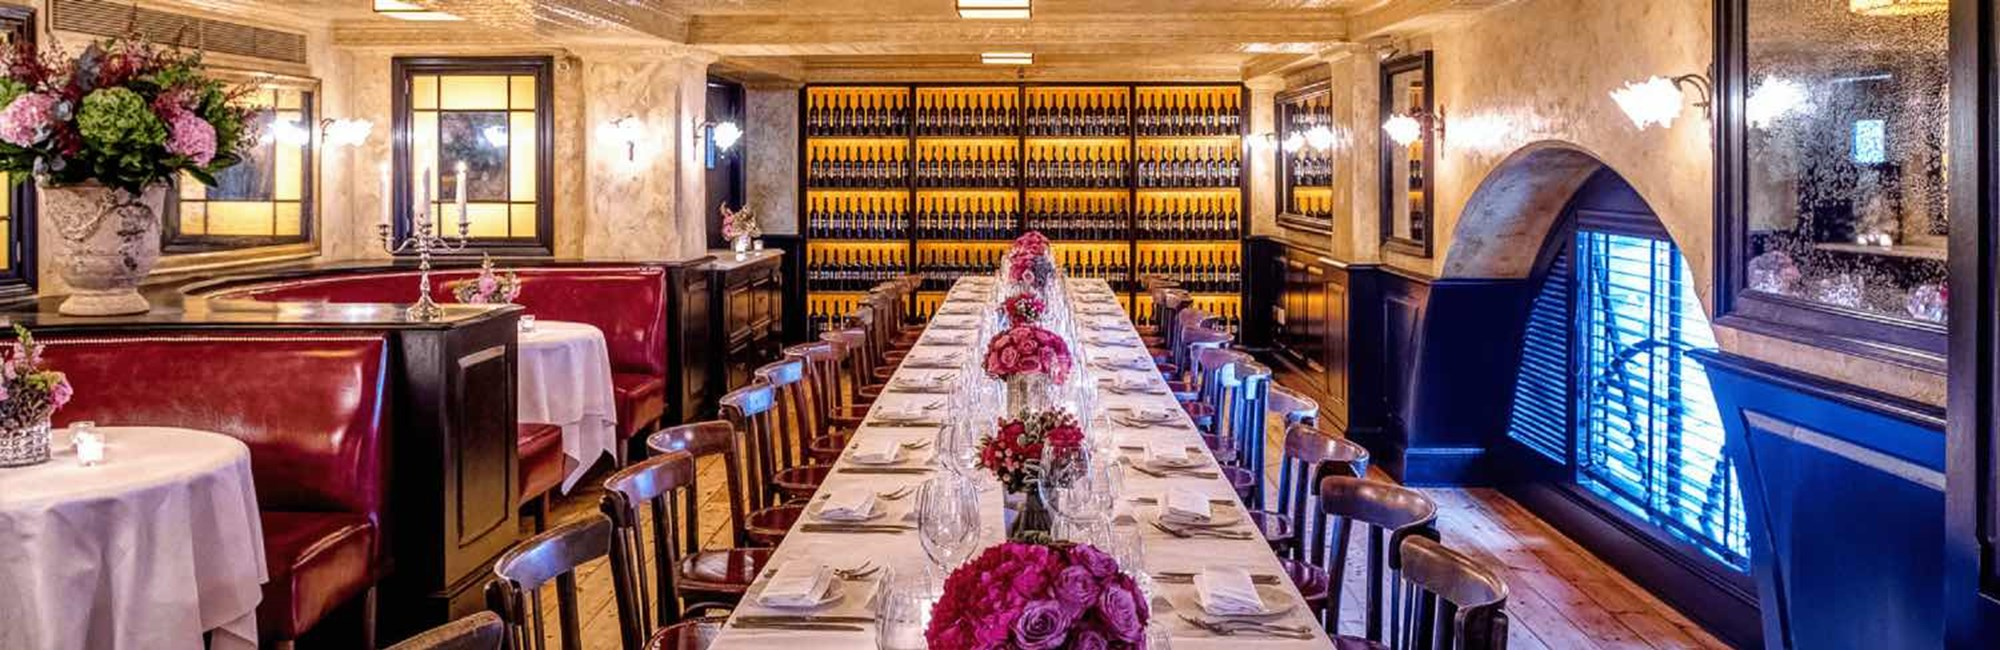 balthazar private dining room 2 min